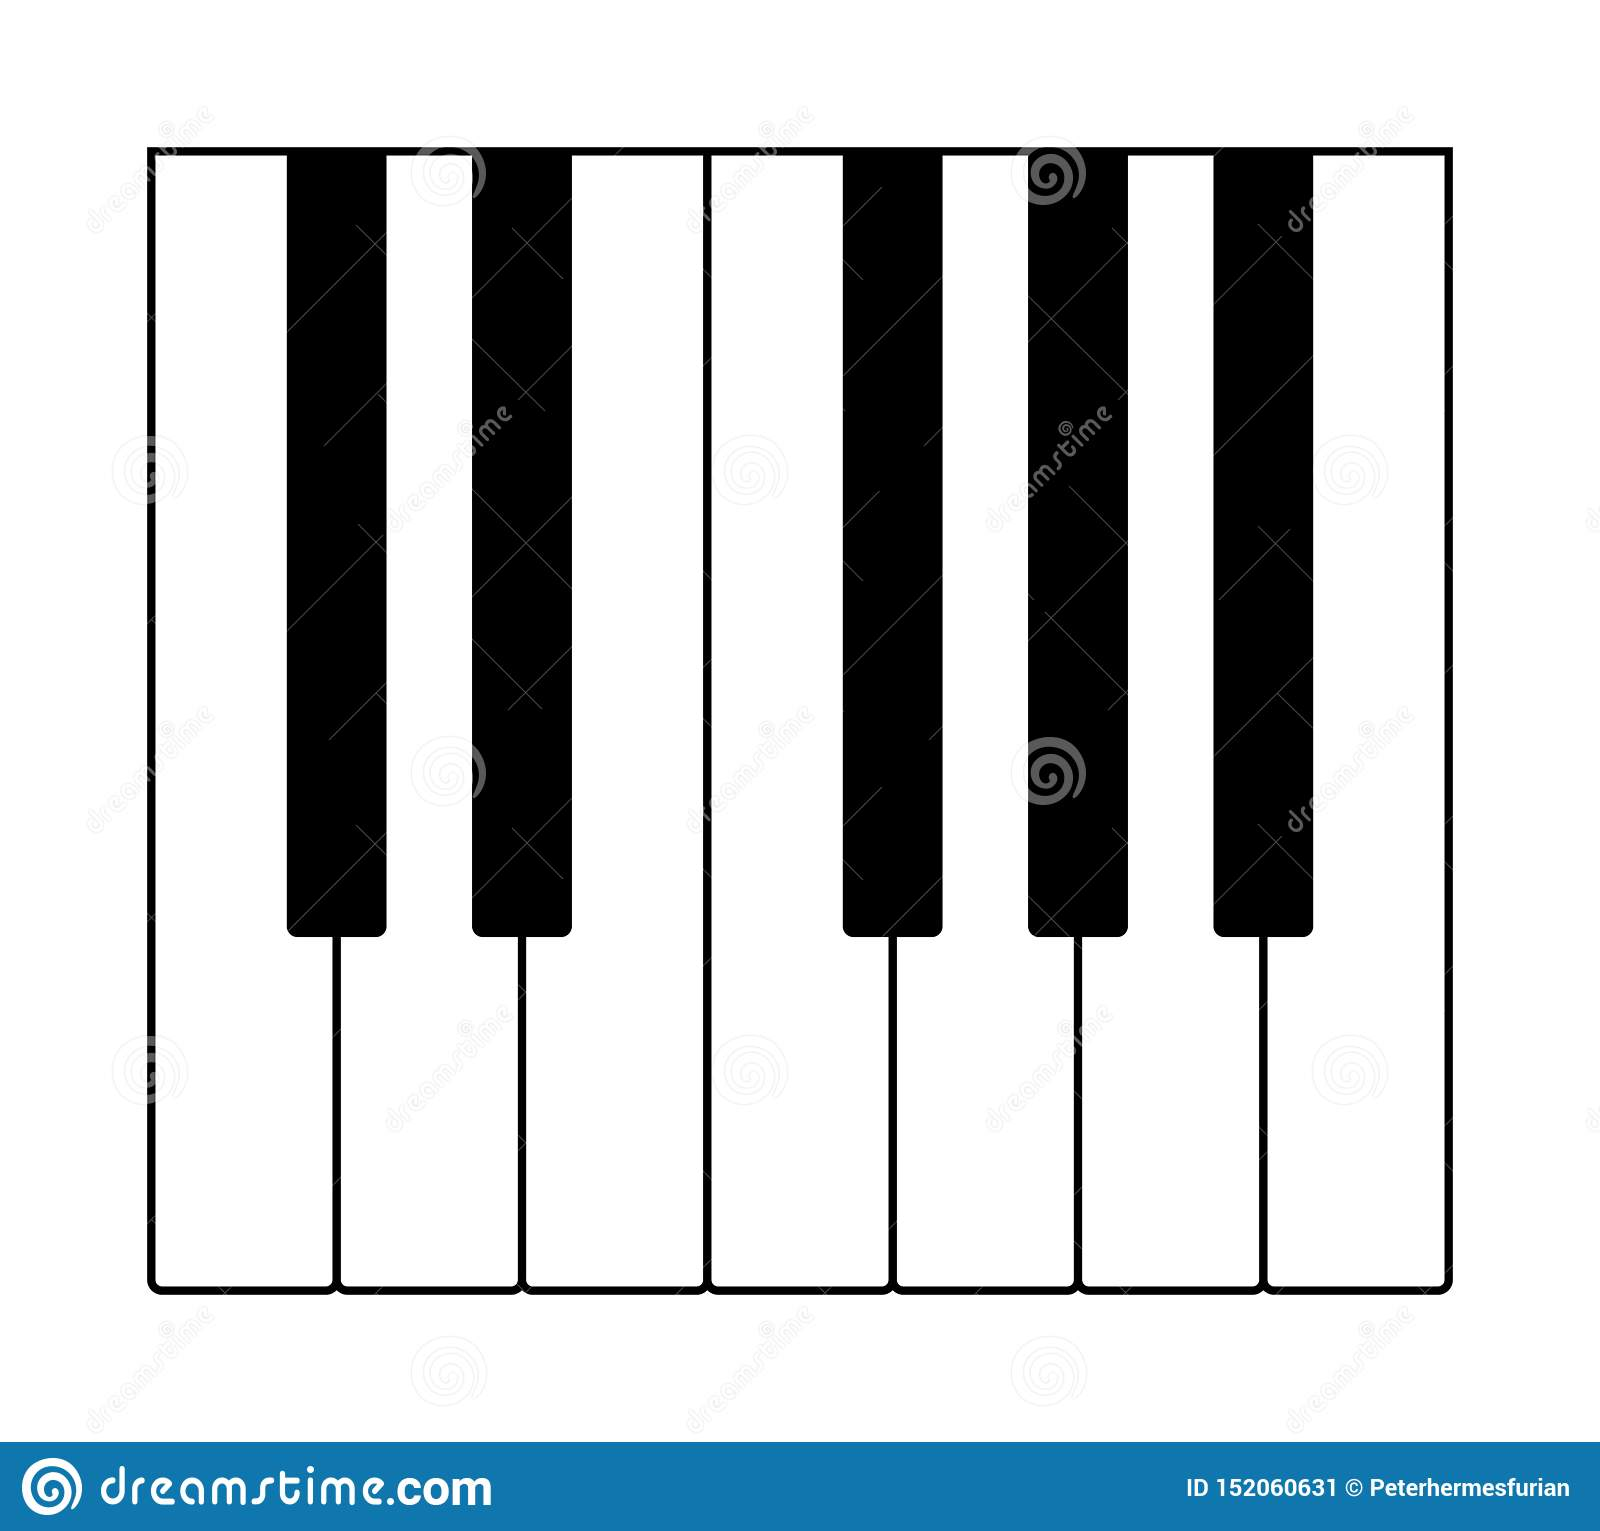 One octave on a musical keyboard